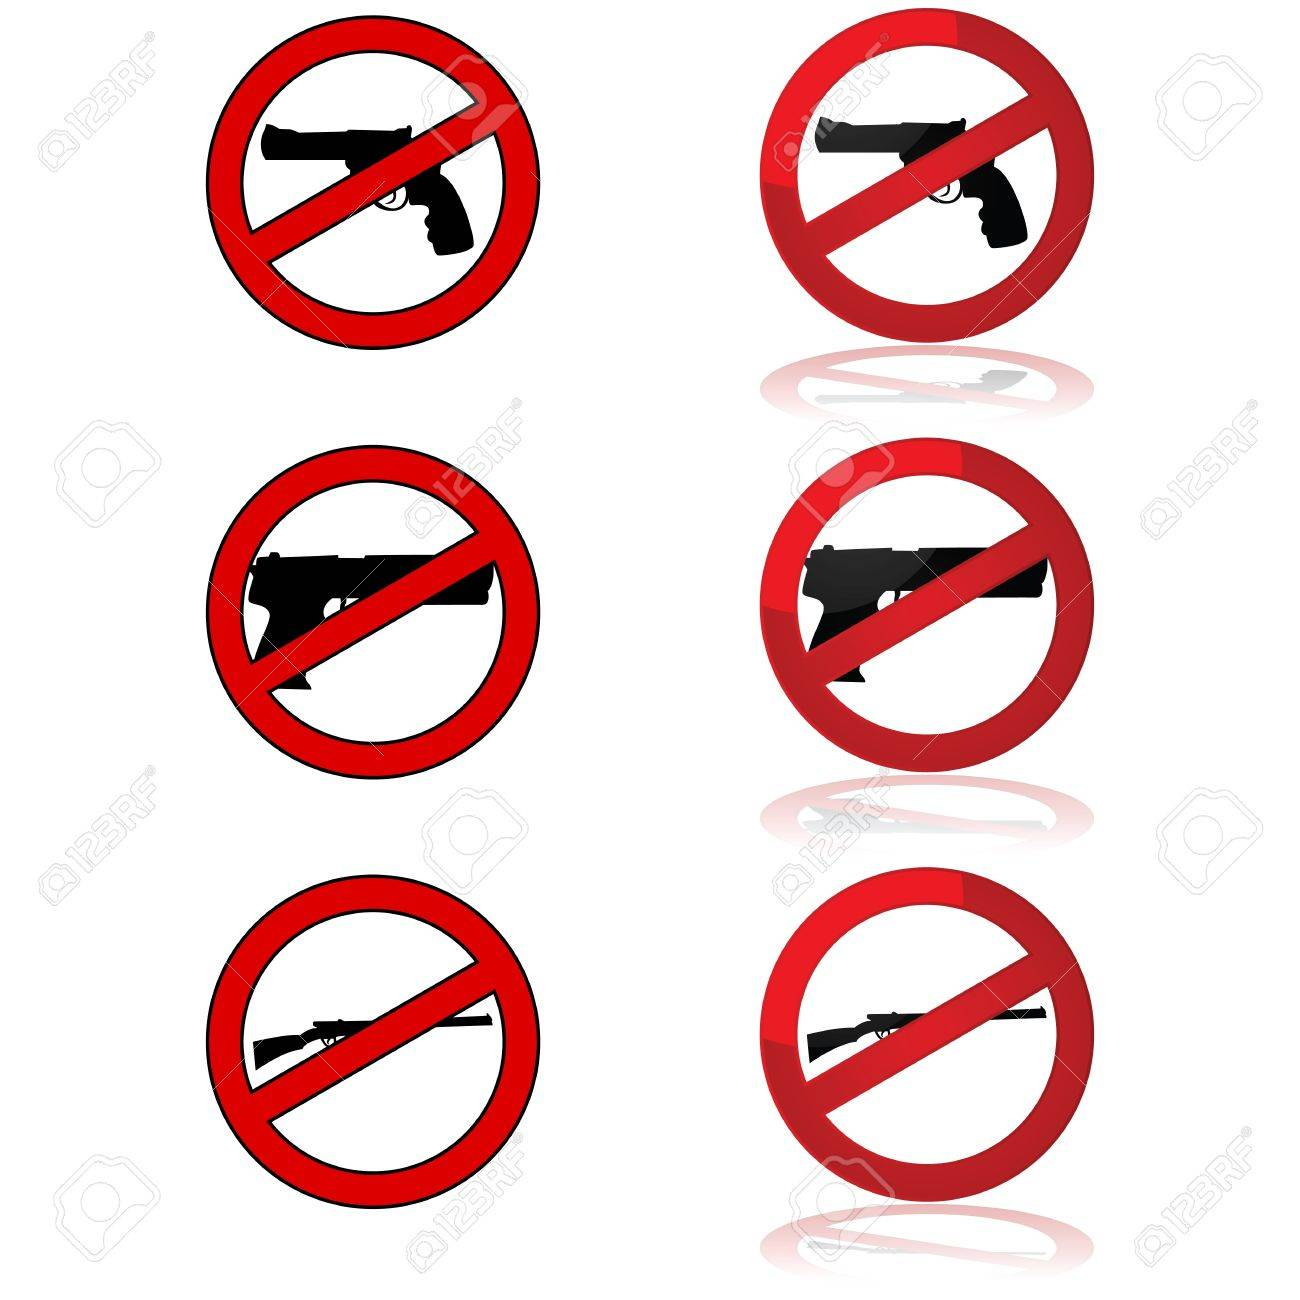 Icons showing different gun shapes and the forbidden sign Stock Vector - 16878858